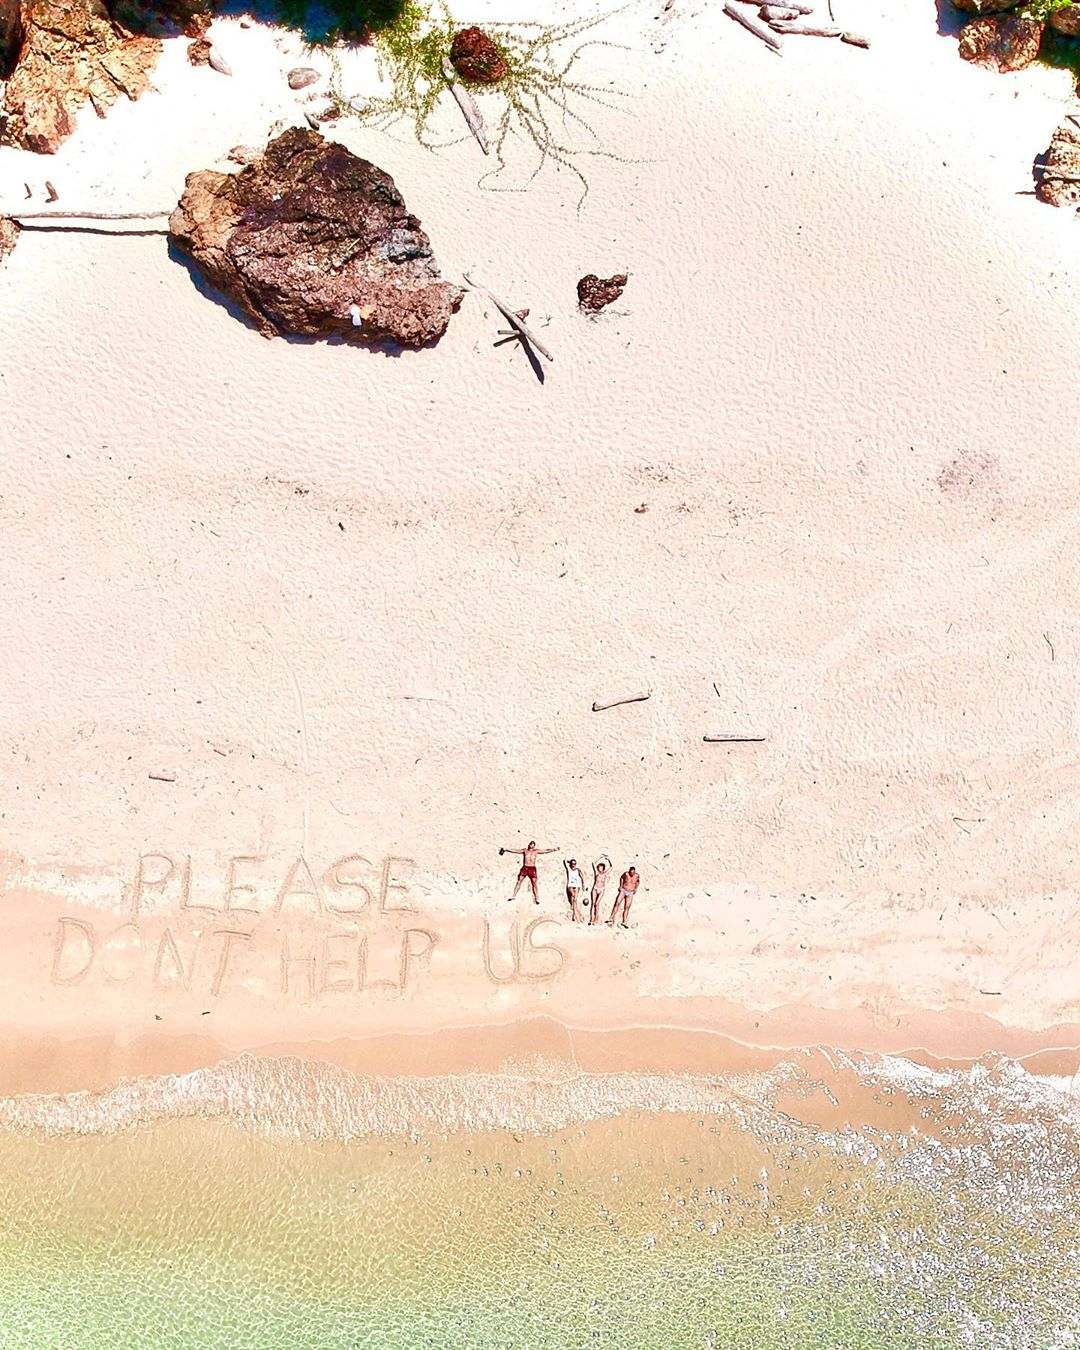 Please don't help us written in the sand of the beach of Koh Kradan seen from a drone